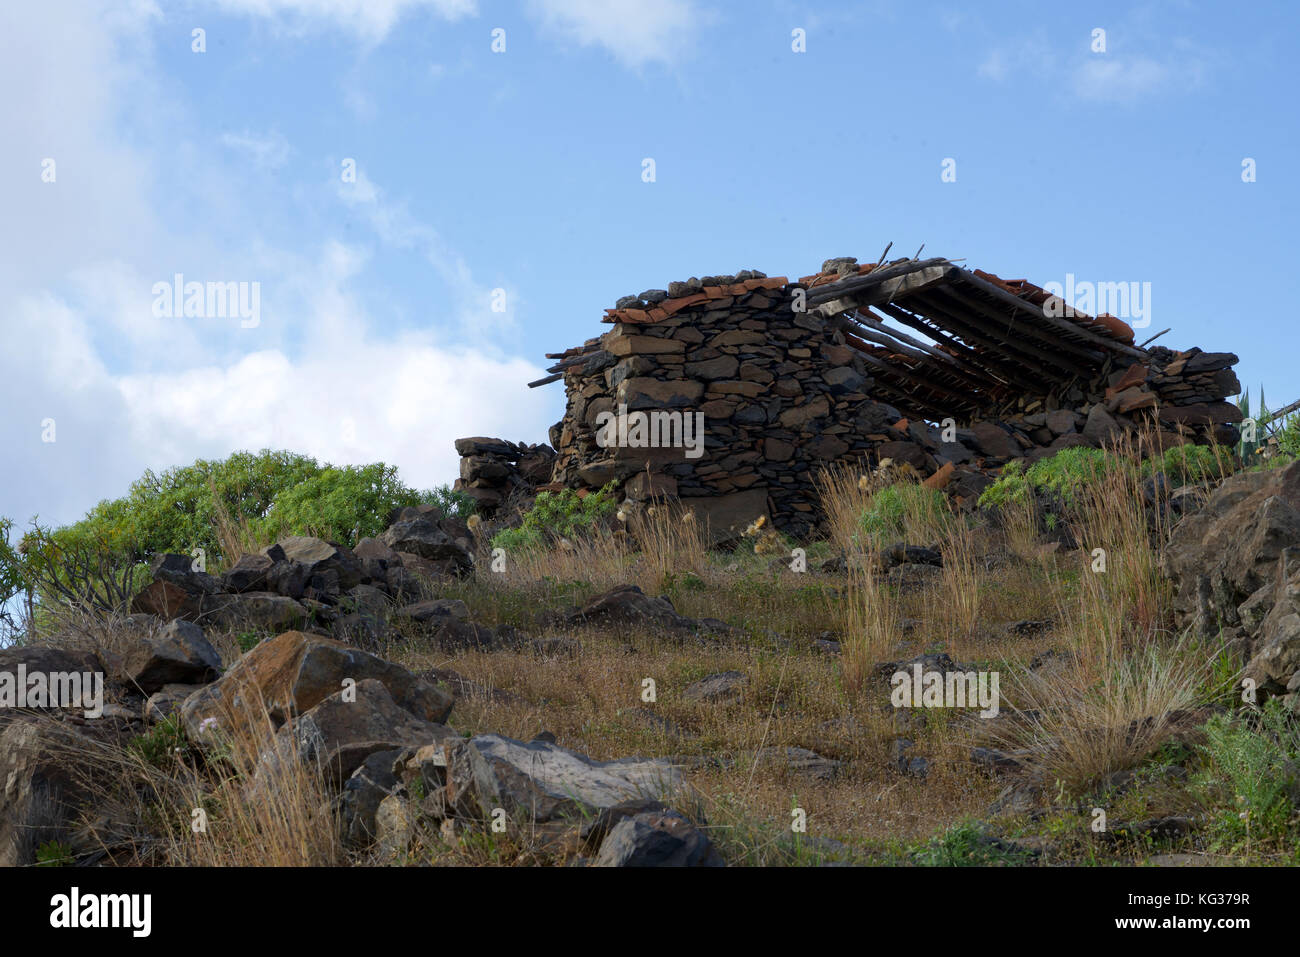 morbid house fallen into ruin on a hill under the blue sky - Stock Image